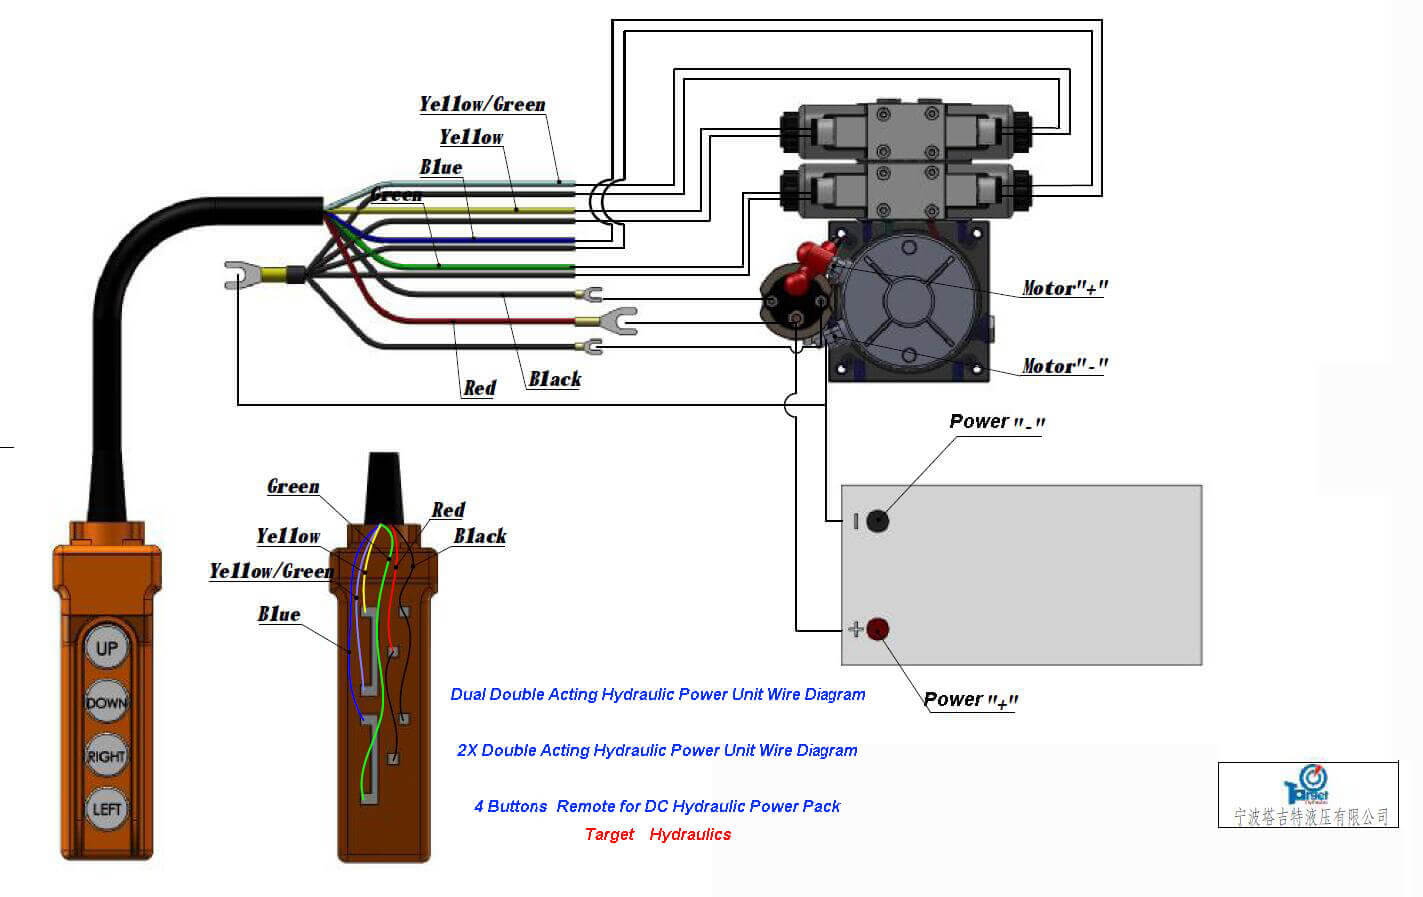 How To Wire Hydraulic Power Packpower Unit Diagram Design 12 Motor Wiring Dc Double Acting Pack Dual Cylinder Units